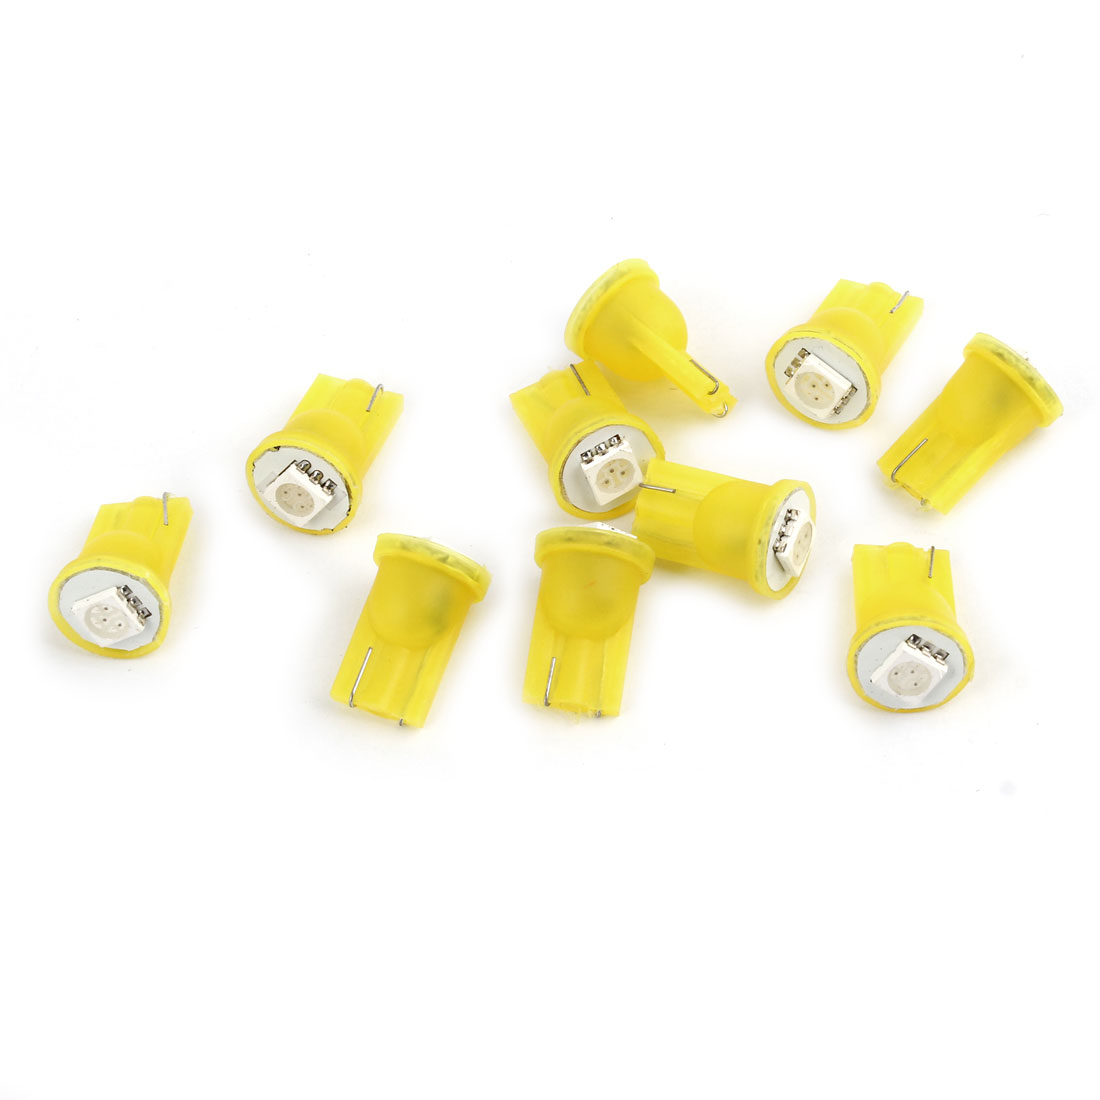 Car Internal T10 Yellow Light 5050 SMD LED Signal Turning Bulbs Tail Lamps 10 Pcs